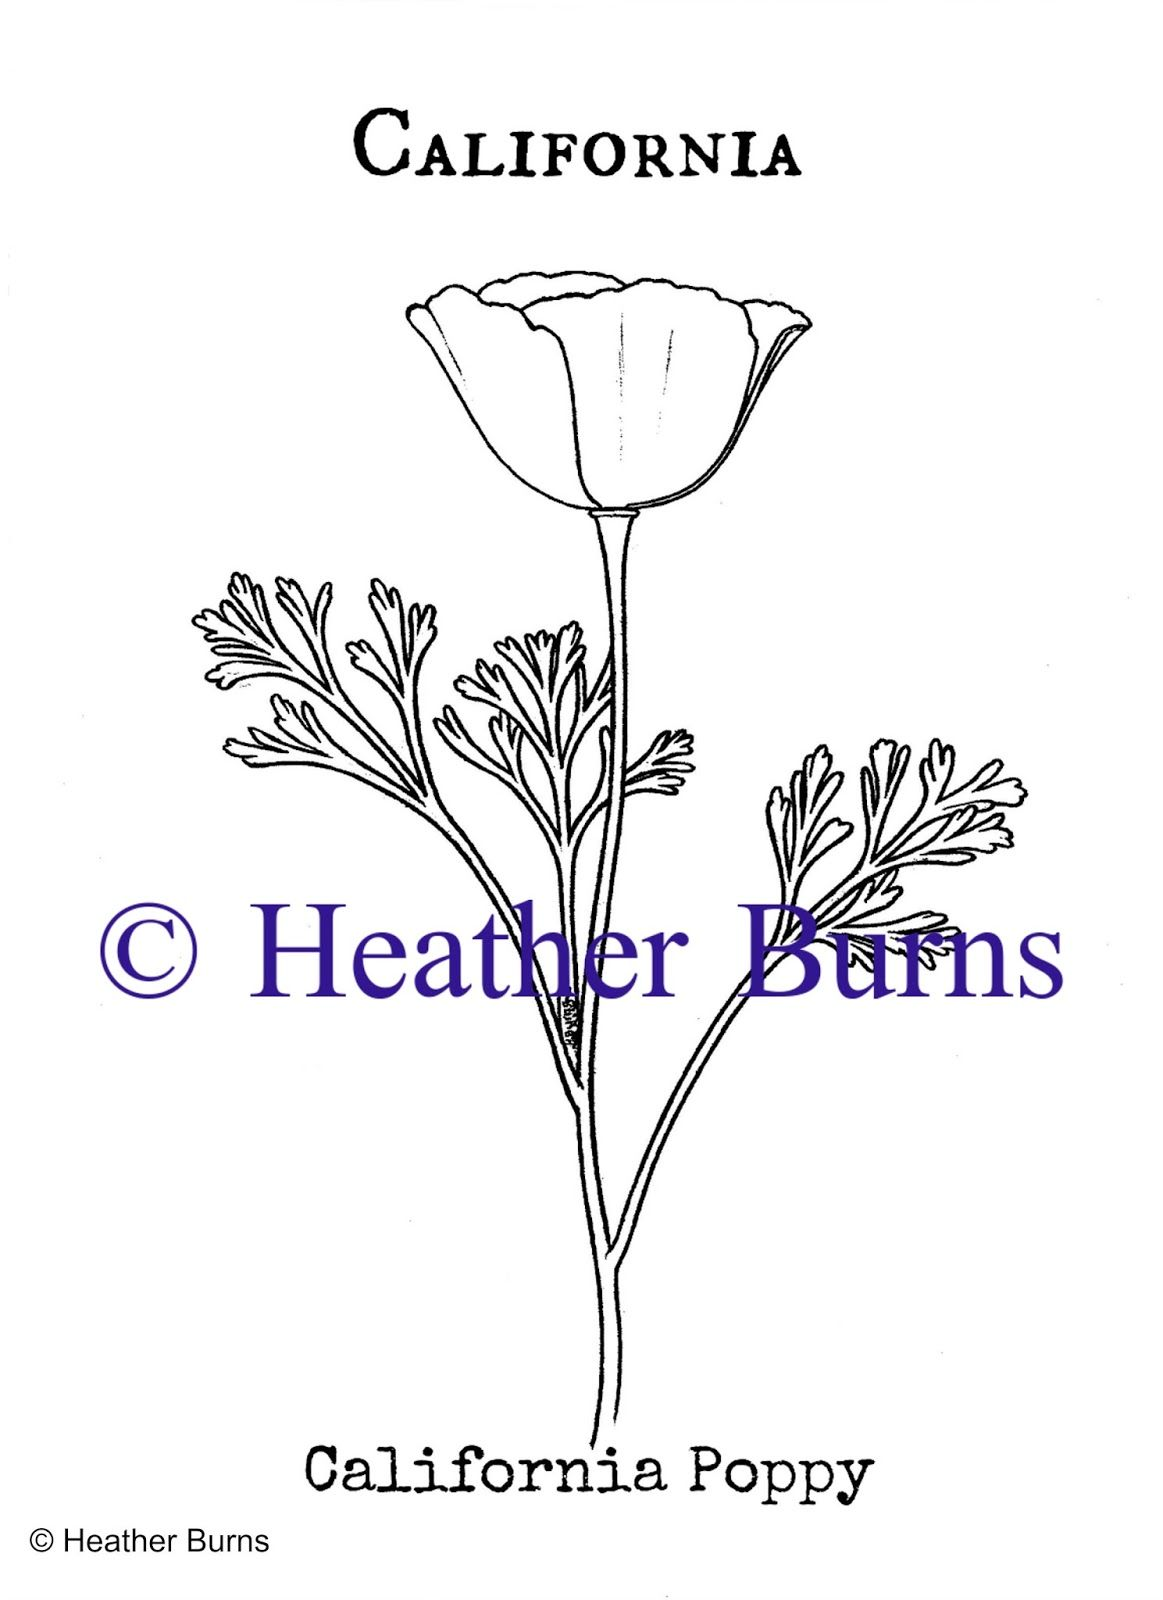 California poppy coloring state flower coloring book pinterest california state flower poppy coloring page biocorpaavc Gallery